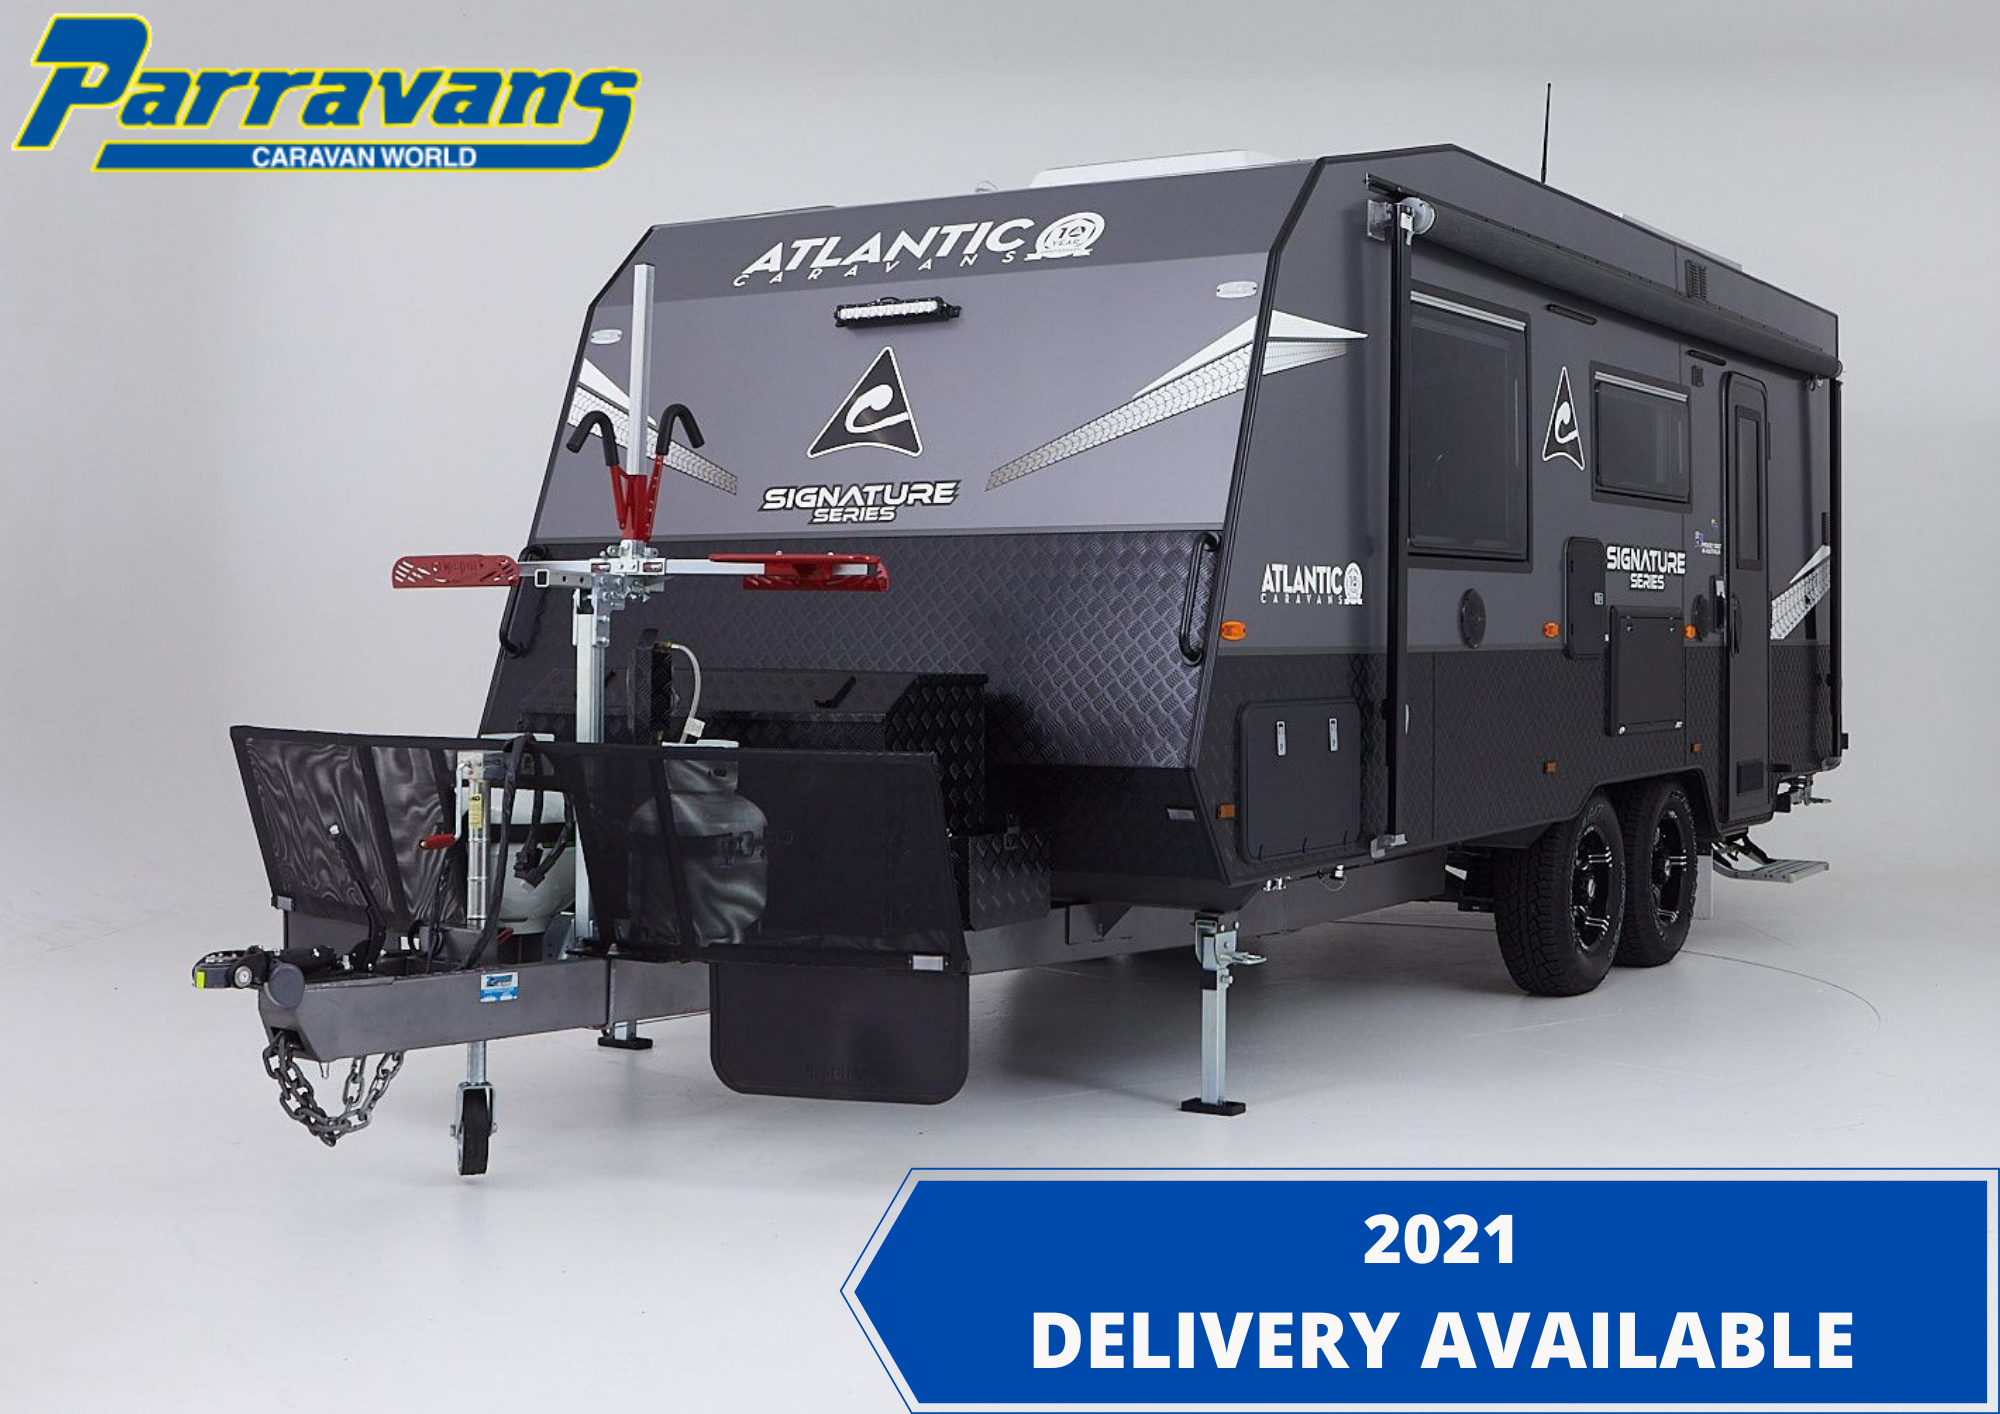 THIS IS YOUR LAST CHANCE TO GET YOUR VAN FOR SUMMER - 2021 ATLANTIC CARAVANS WITH 2021 DELIVERY